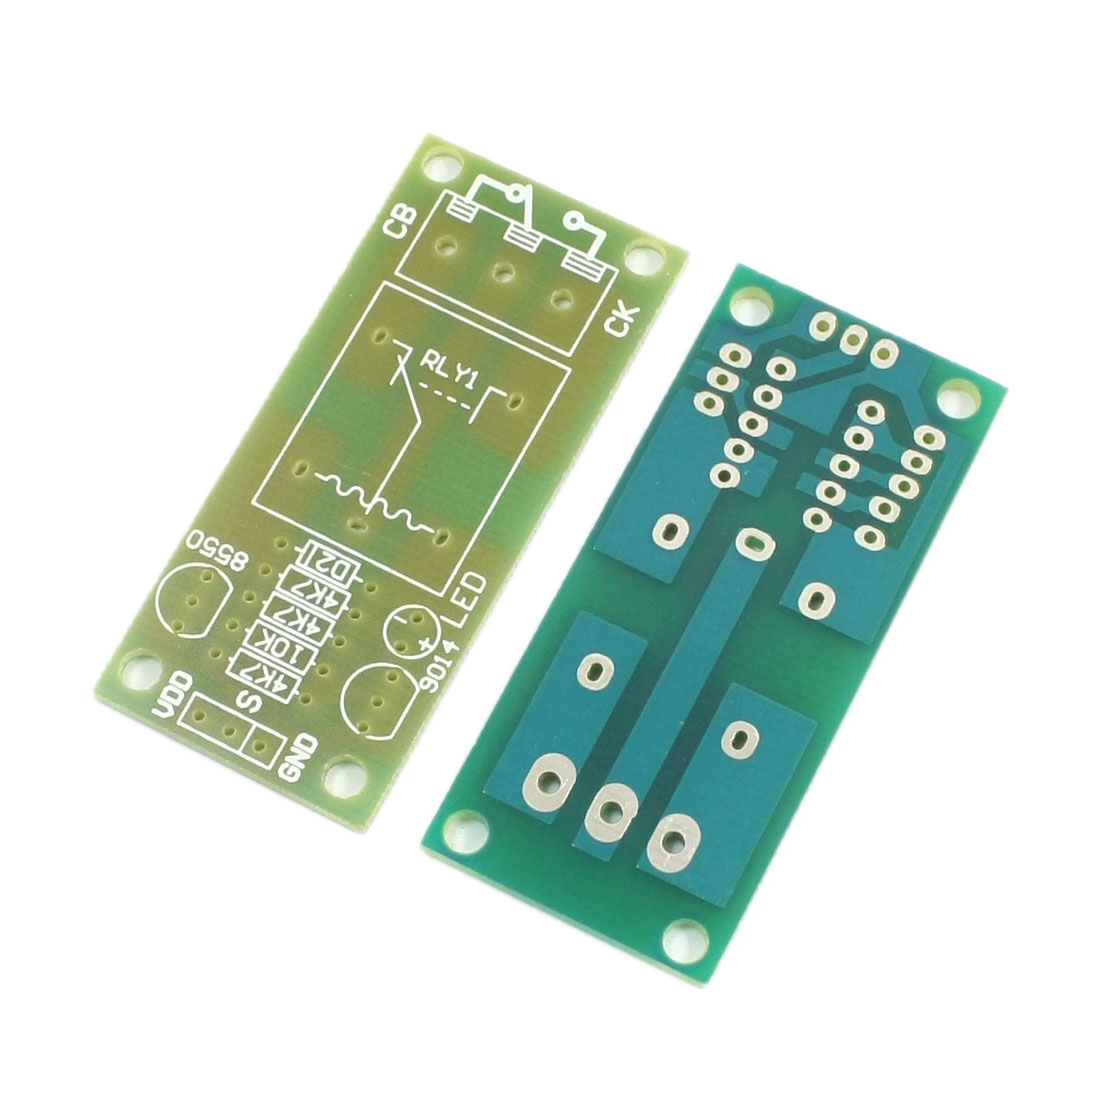 2 Pcs 5V 6V 9V 12V 24V 1-Channel 1CH High Level Trigger Action Relay Extension Module PCB Circuit Board